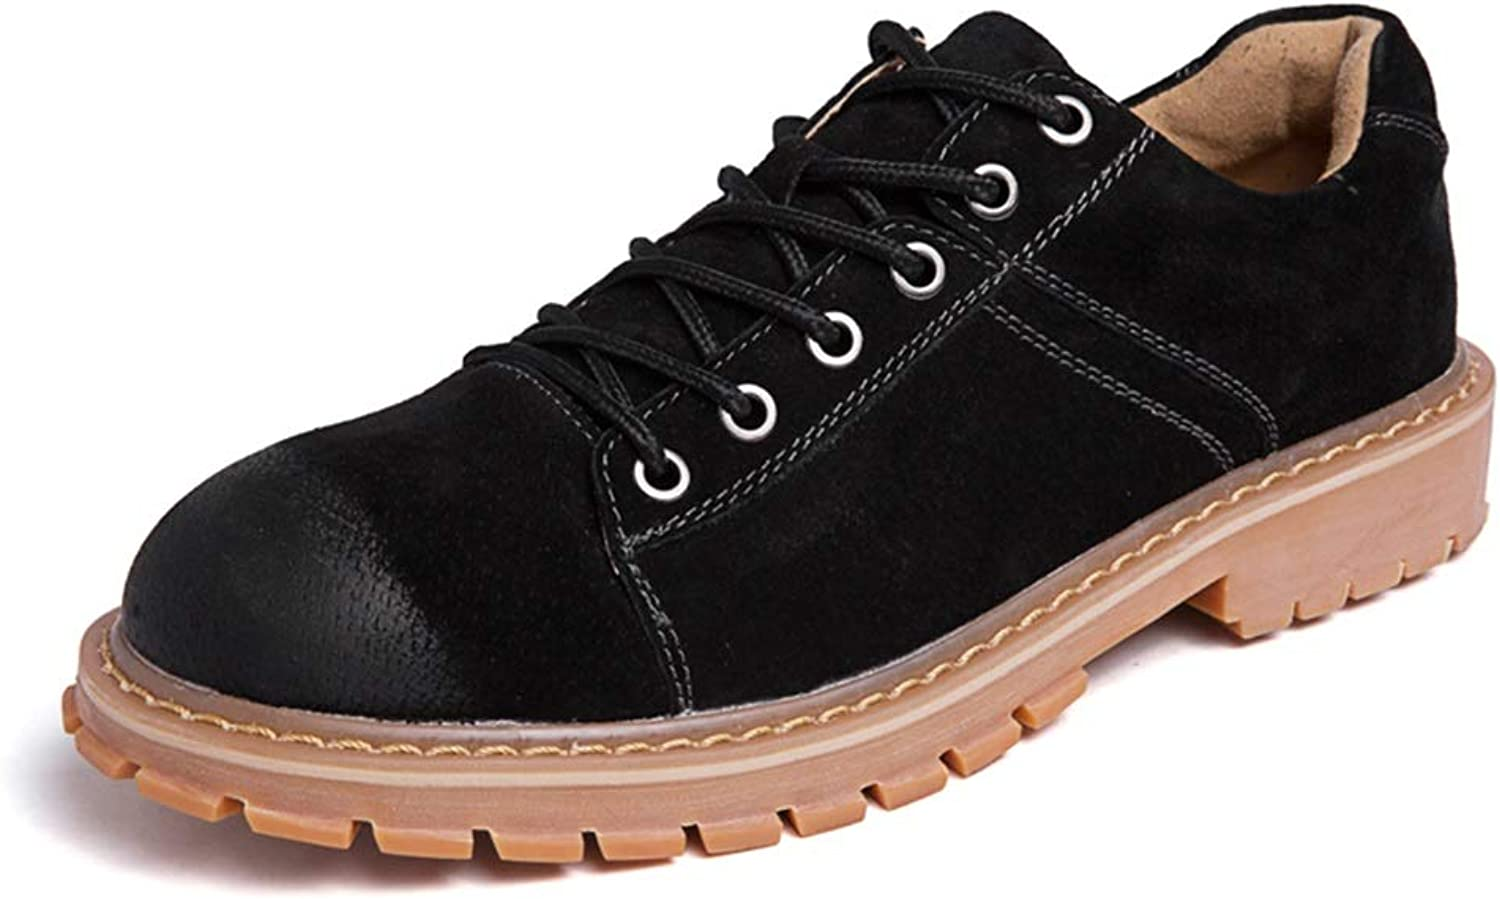 XIANGBAO-Personality Men's Fashion Oxfords Perfunctory Rung Toe Wear-Resistant Lacing Up Work shoes